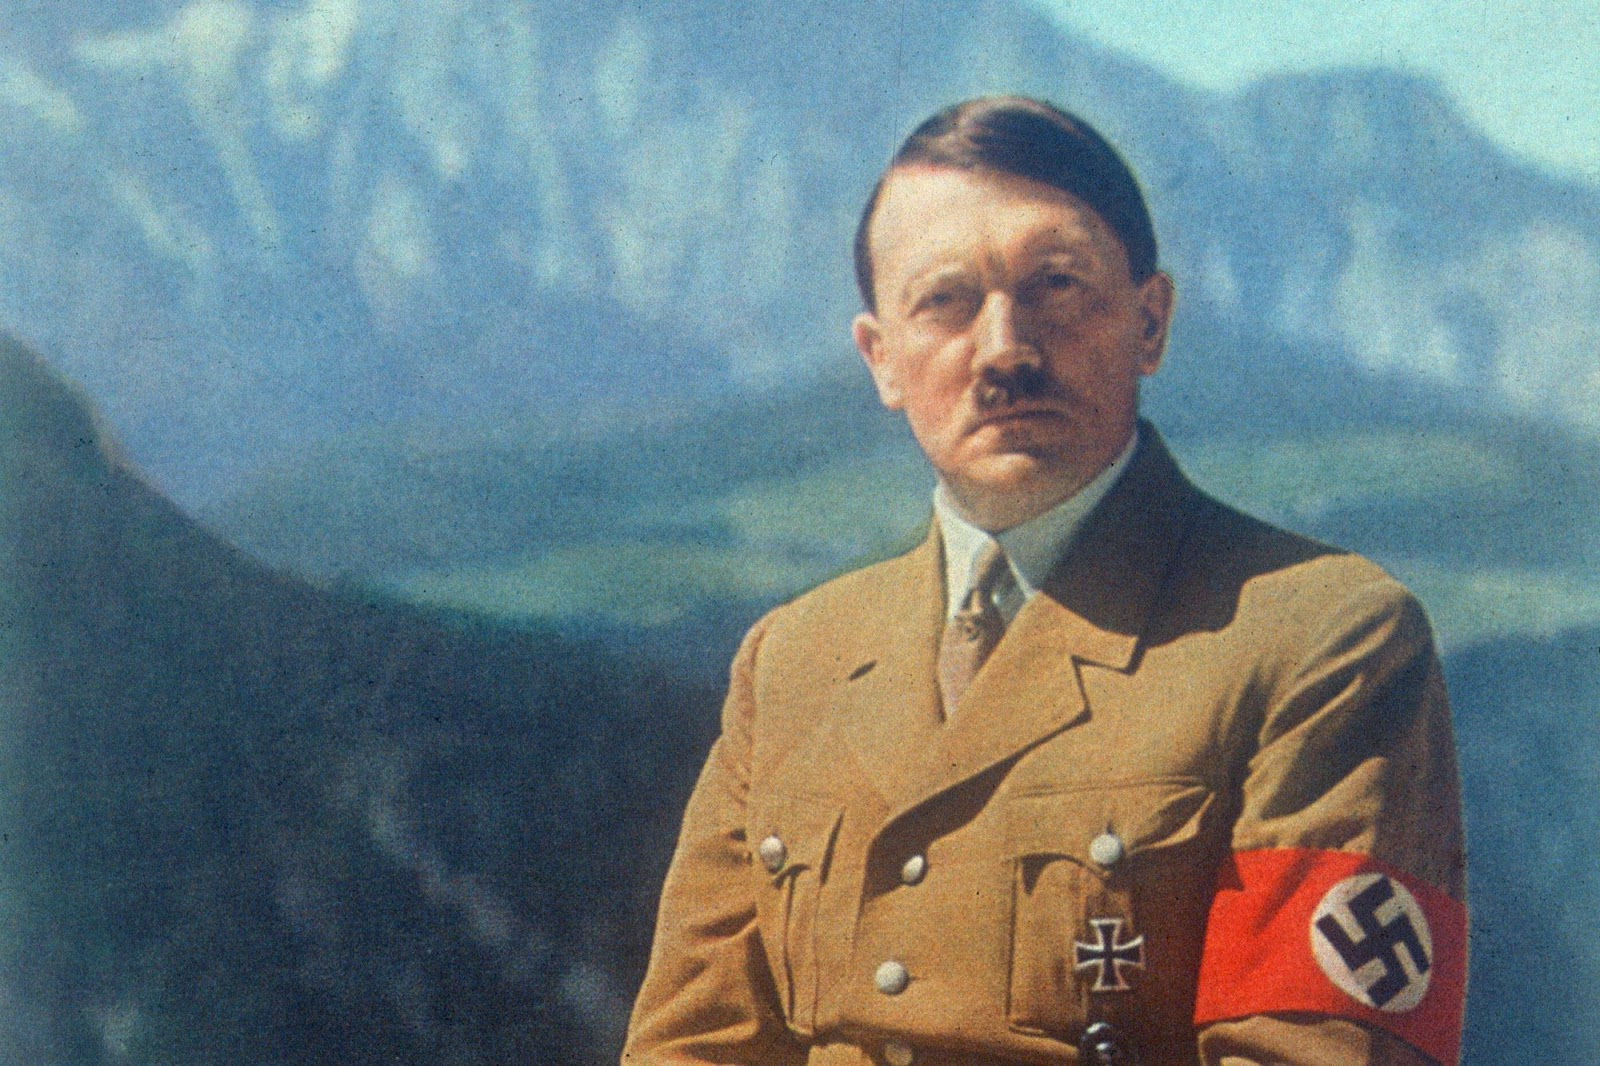 a description of adolf hitler as the son of customs official alois hitler Free essay on hitler and the origins of world war ii he was the son a customs official alois hitler  as a young boy adolf attended church.